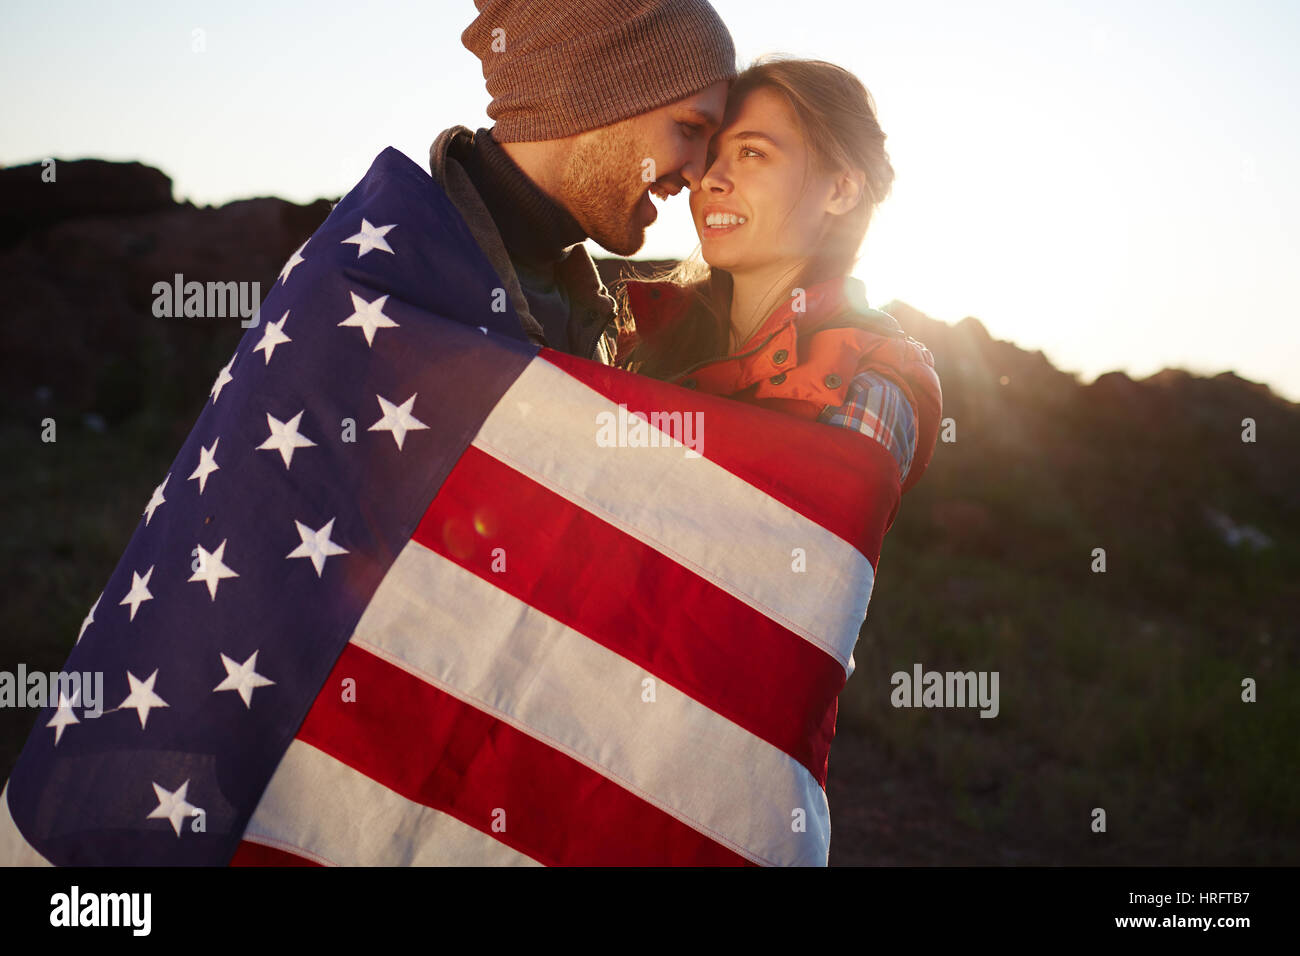 Portrait of young tourist couple standing close together in mountains, embracing tenderly wrapped in American flag - Stock Image